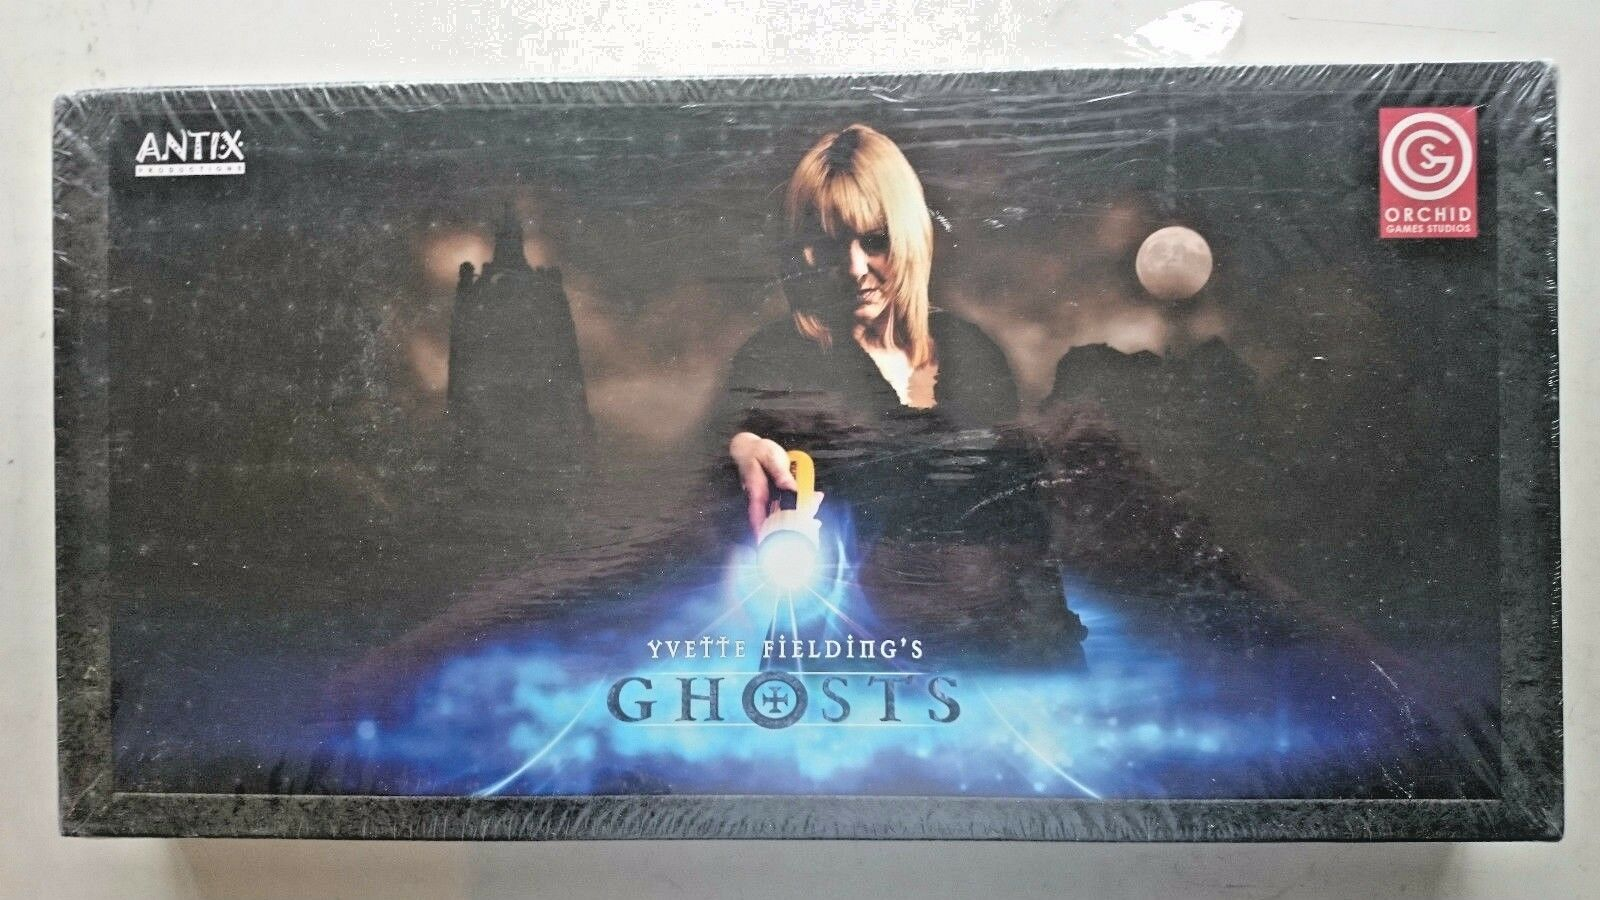 Most Haunted Yvette Fielding's Ghost's Game By Antix 2006 (New and Sealed)